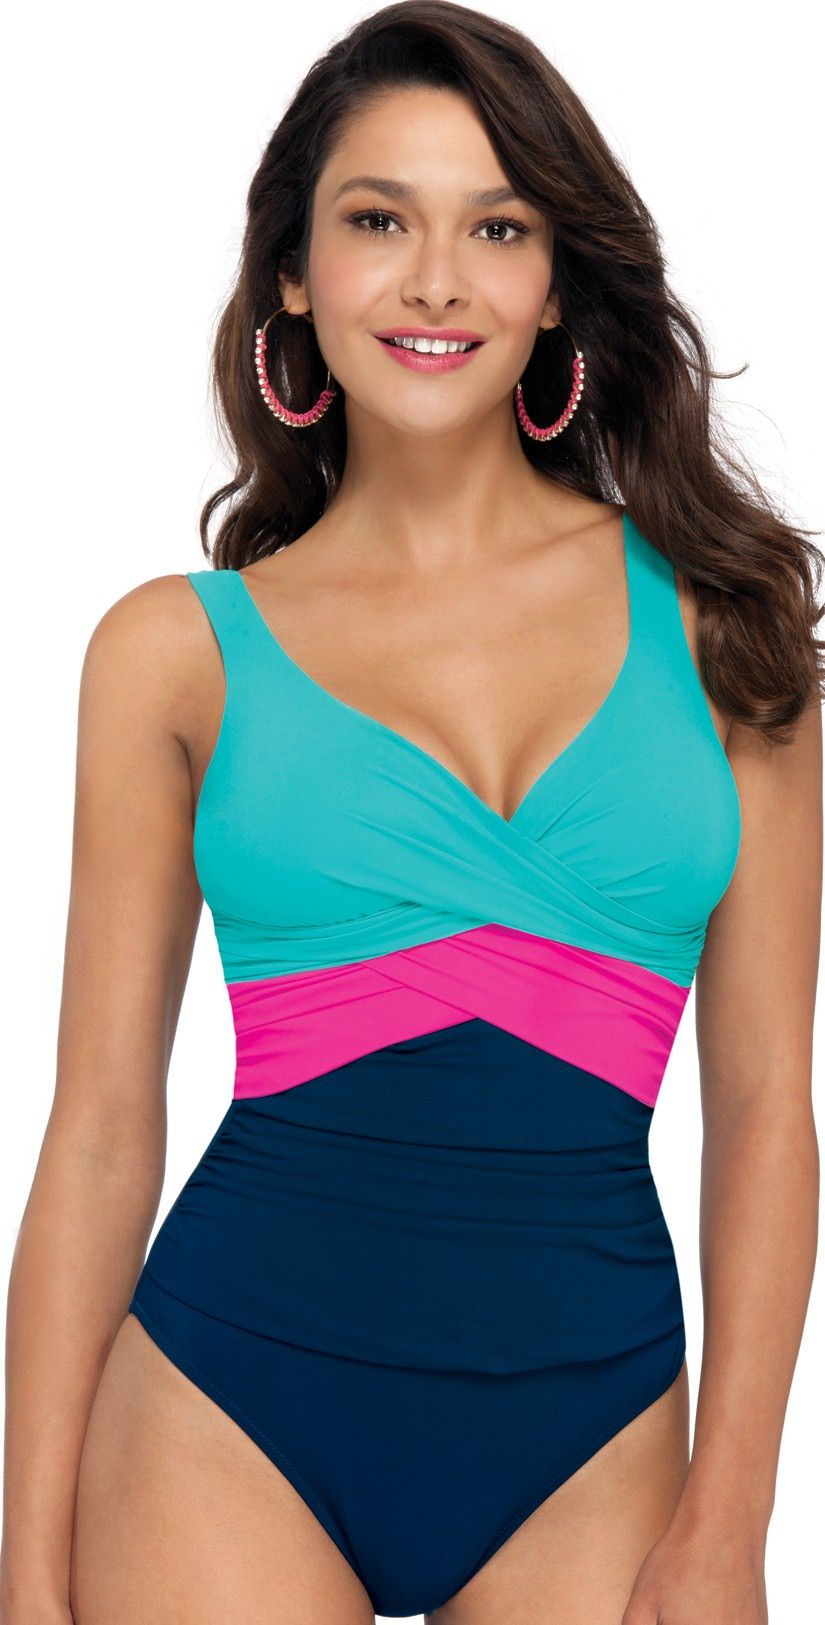 c3cef49fad4 colorblock-swimsuit | swimwear in 2019 | Apple body type, Best ...